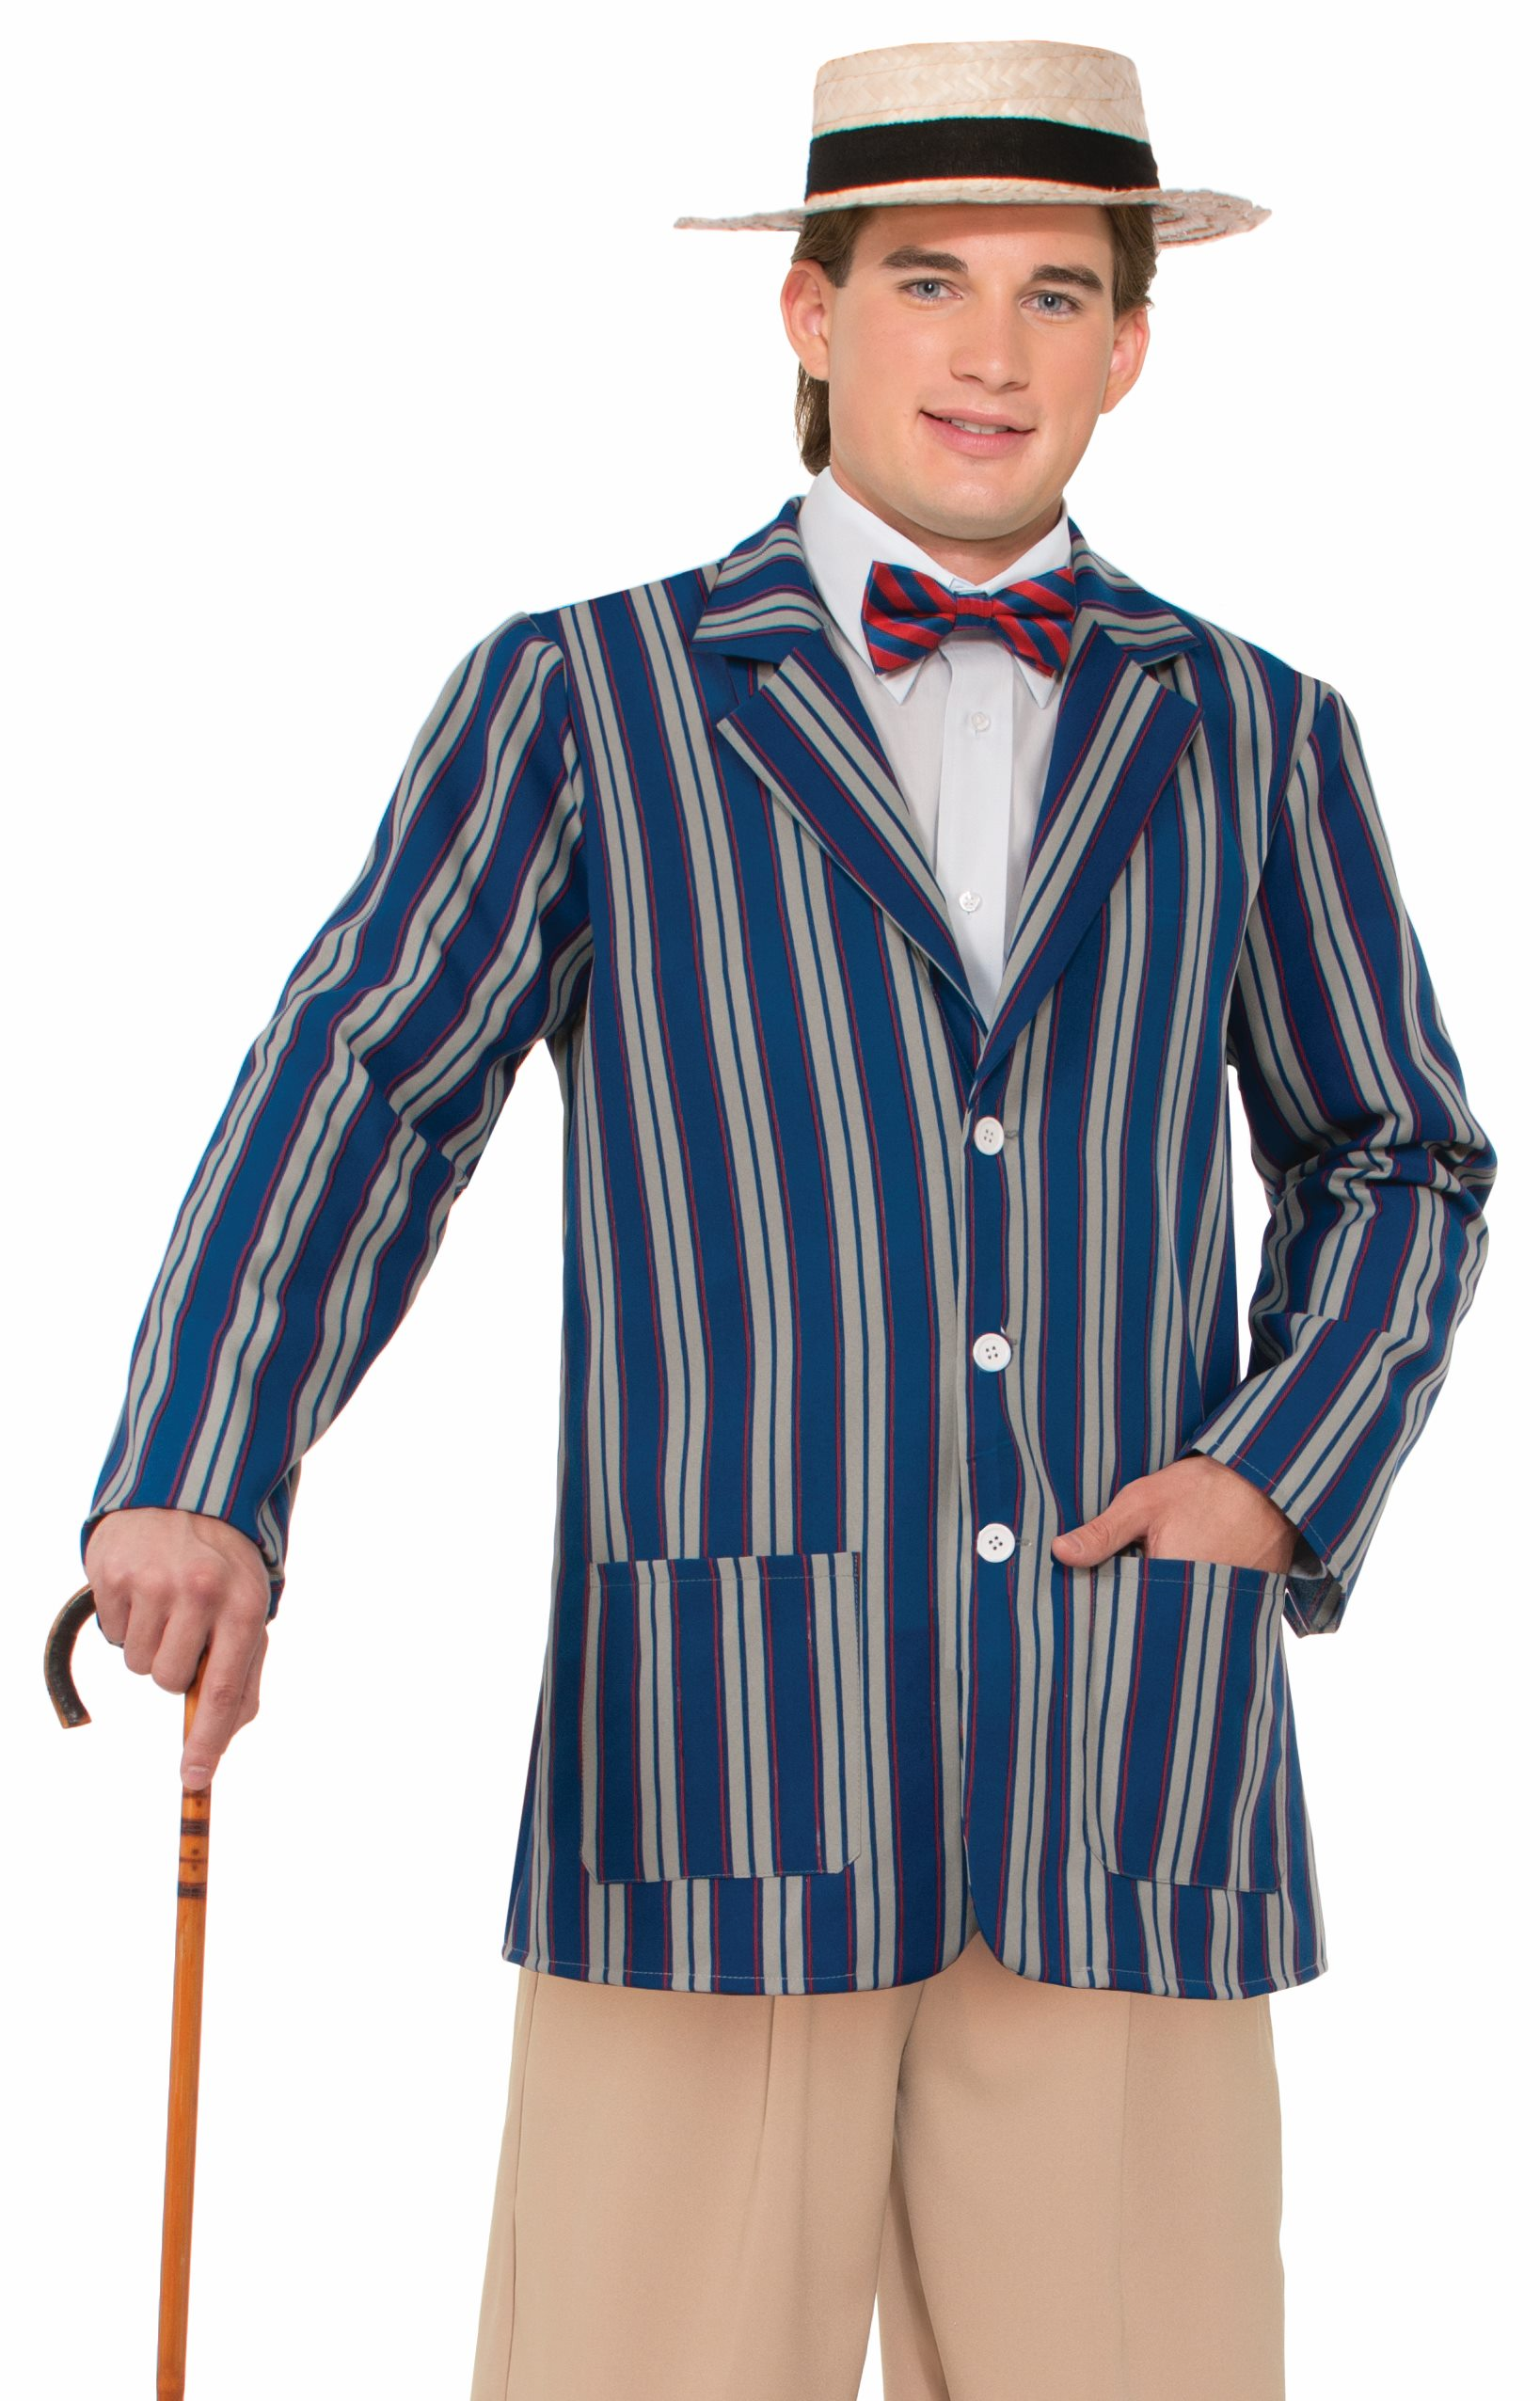 man in barbershop quartet suit with bowtie boat hat and cane